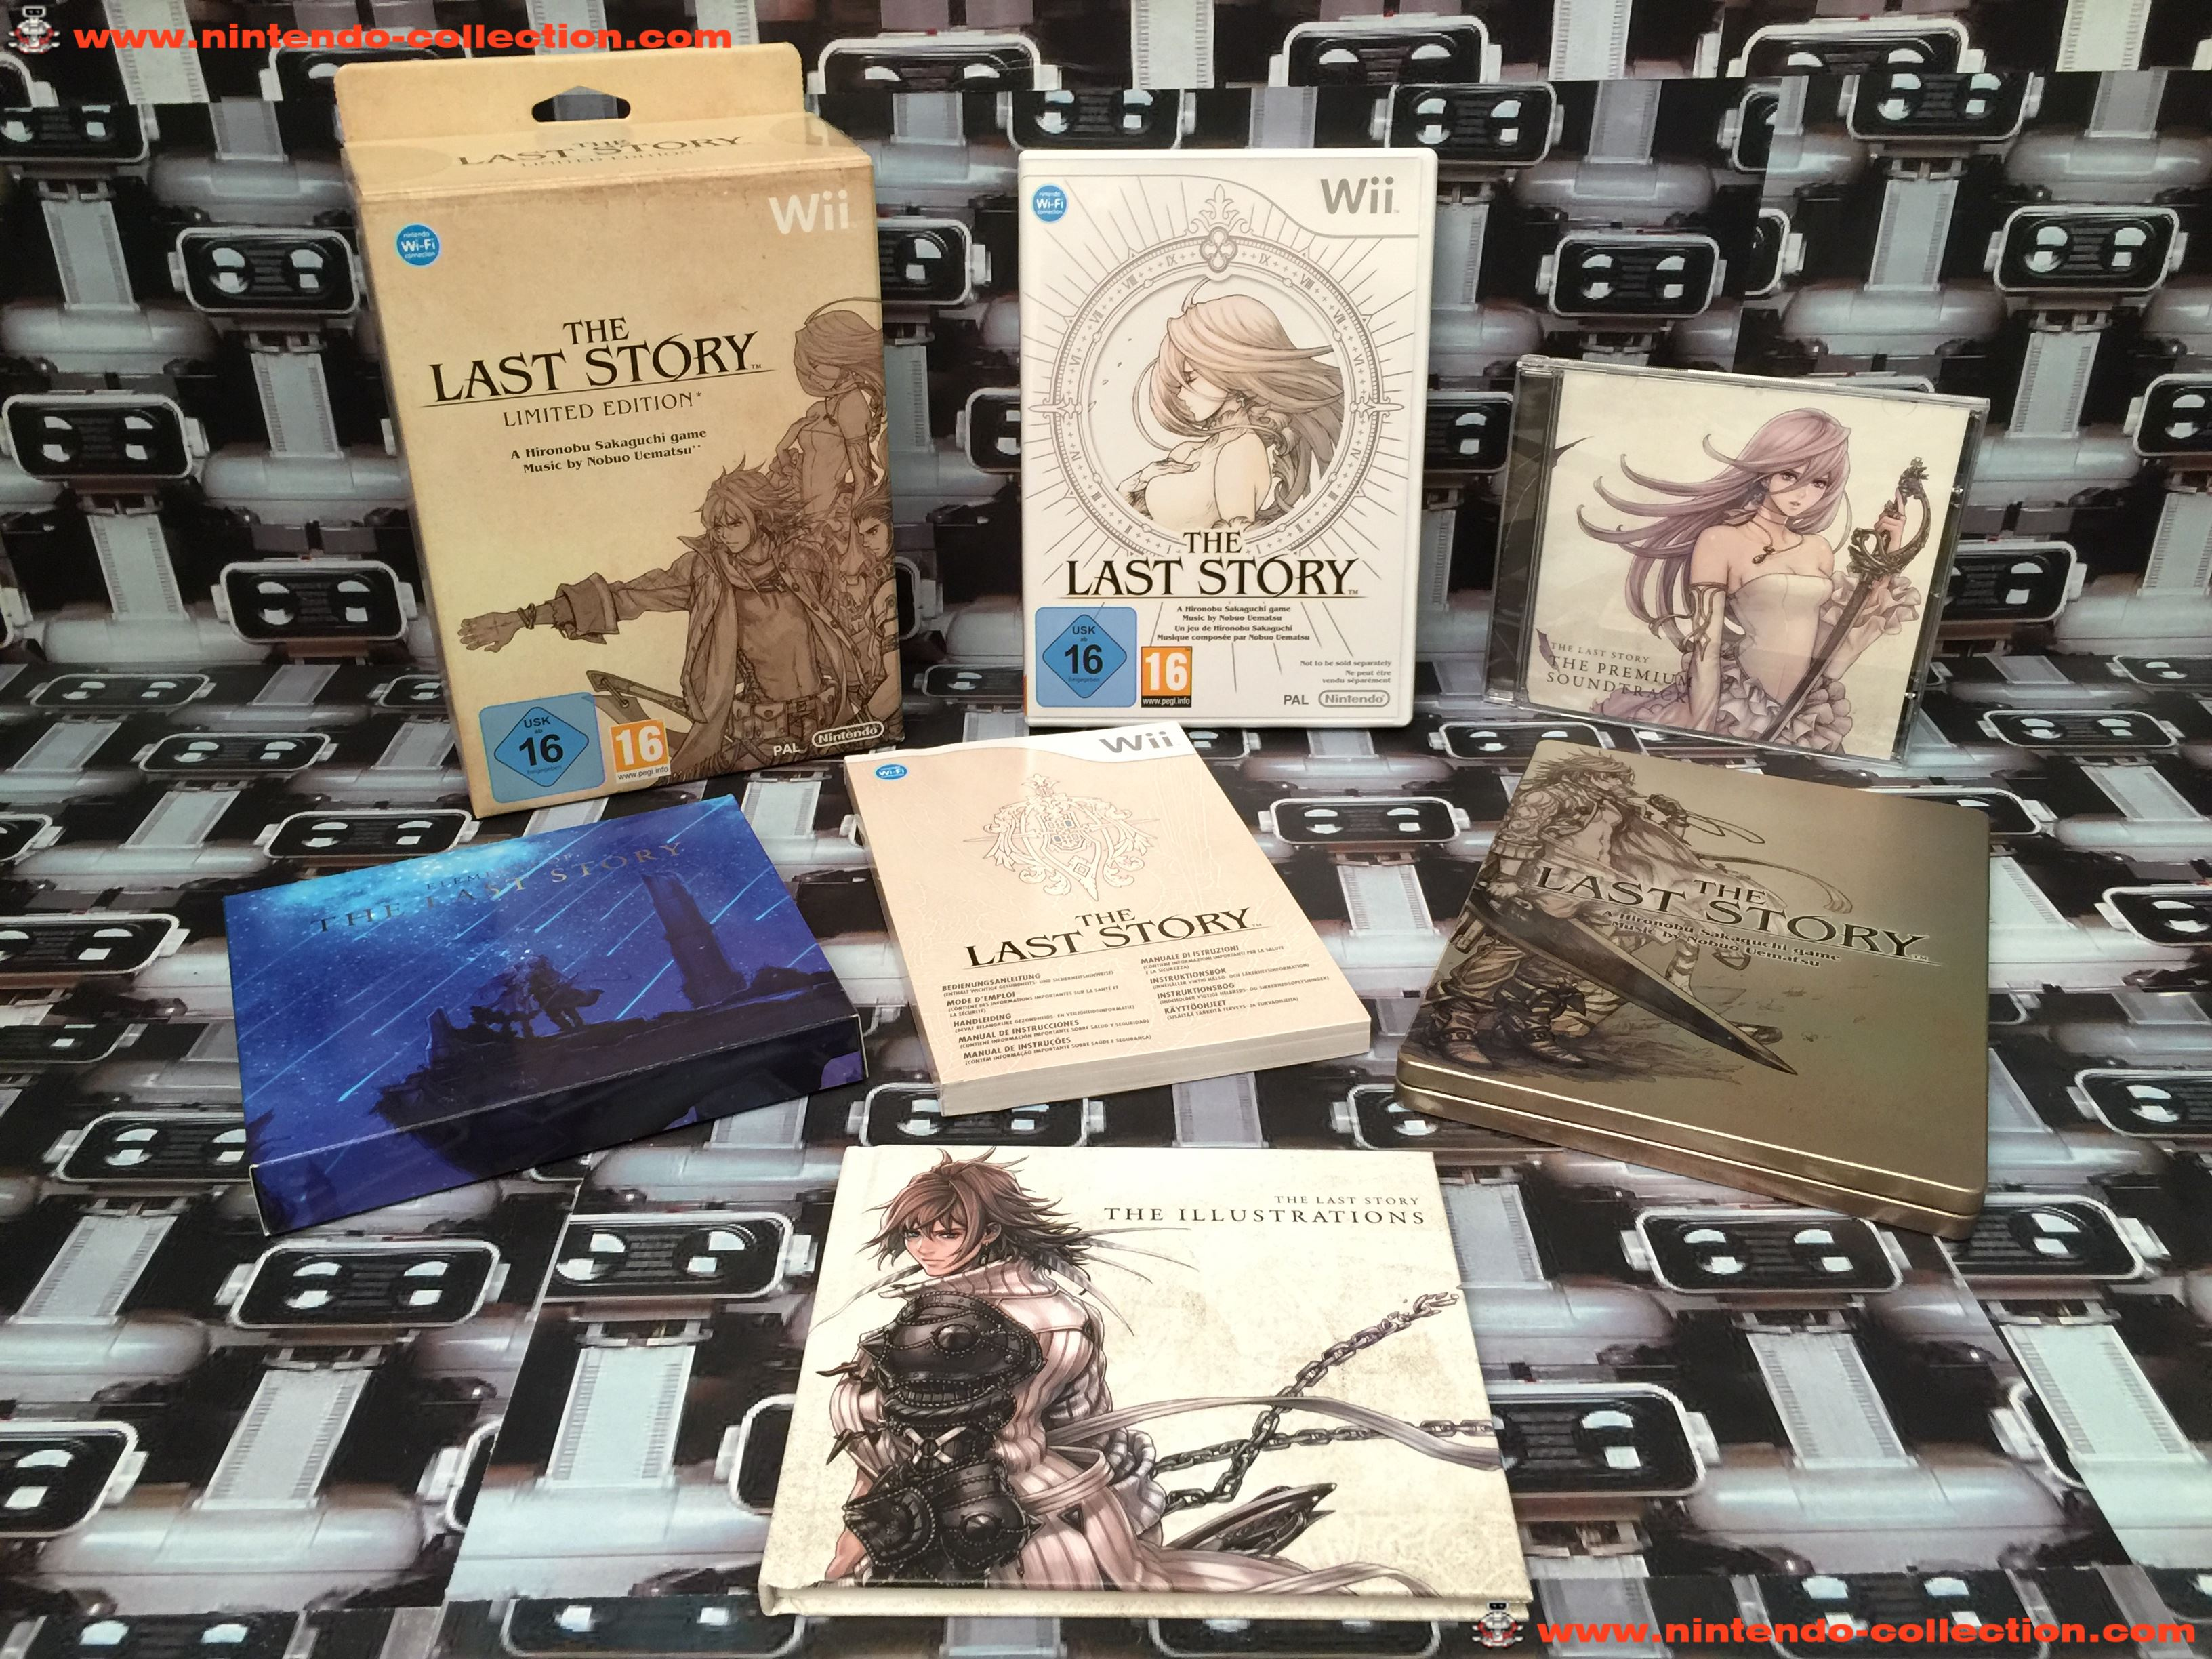 www.nintendo-collection.com - Wii Game Jeu Collector The Last Story